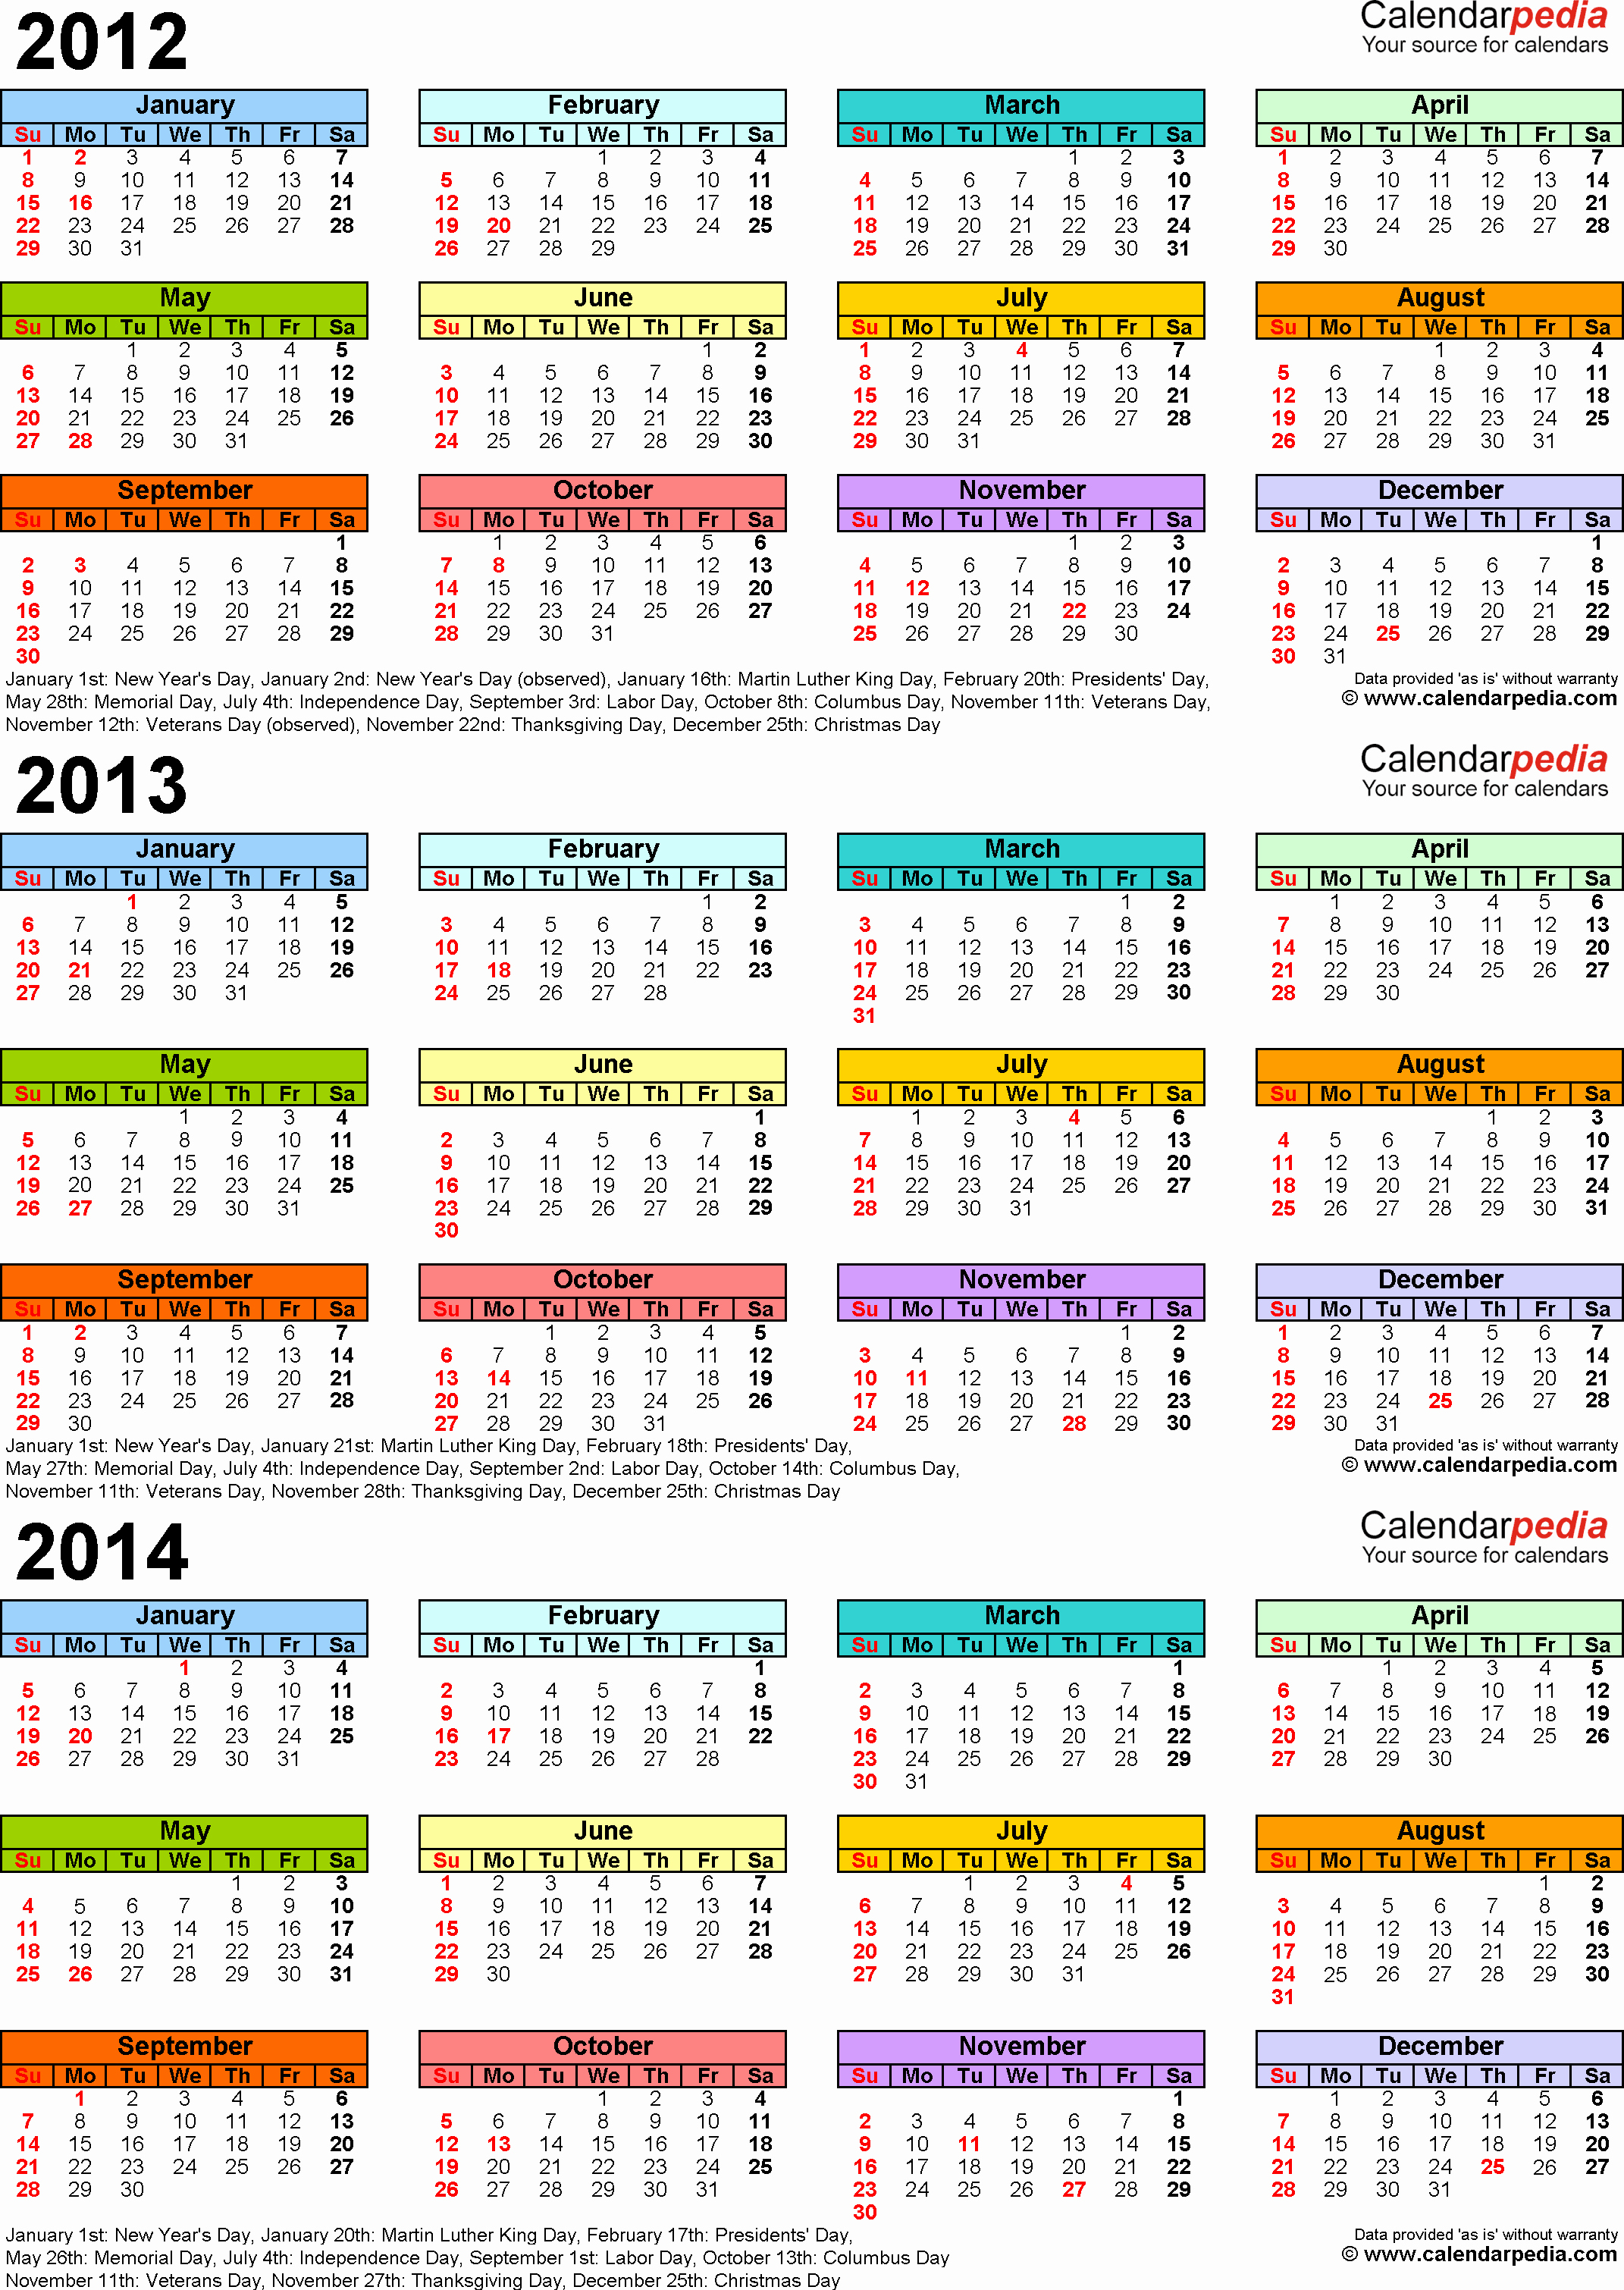 2013 Calendar Printable One Page New 2012 2013 2014 Calendar 2 Three Year Printable Pdf Calendars